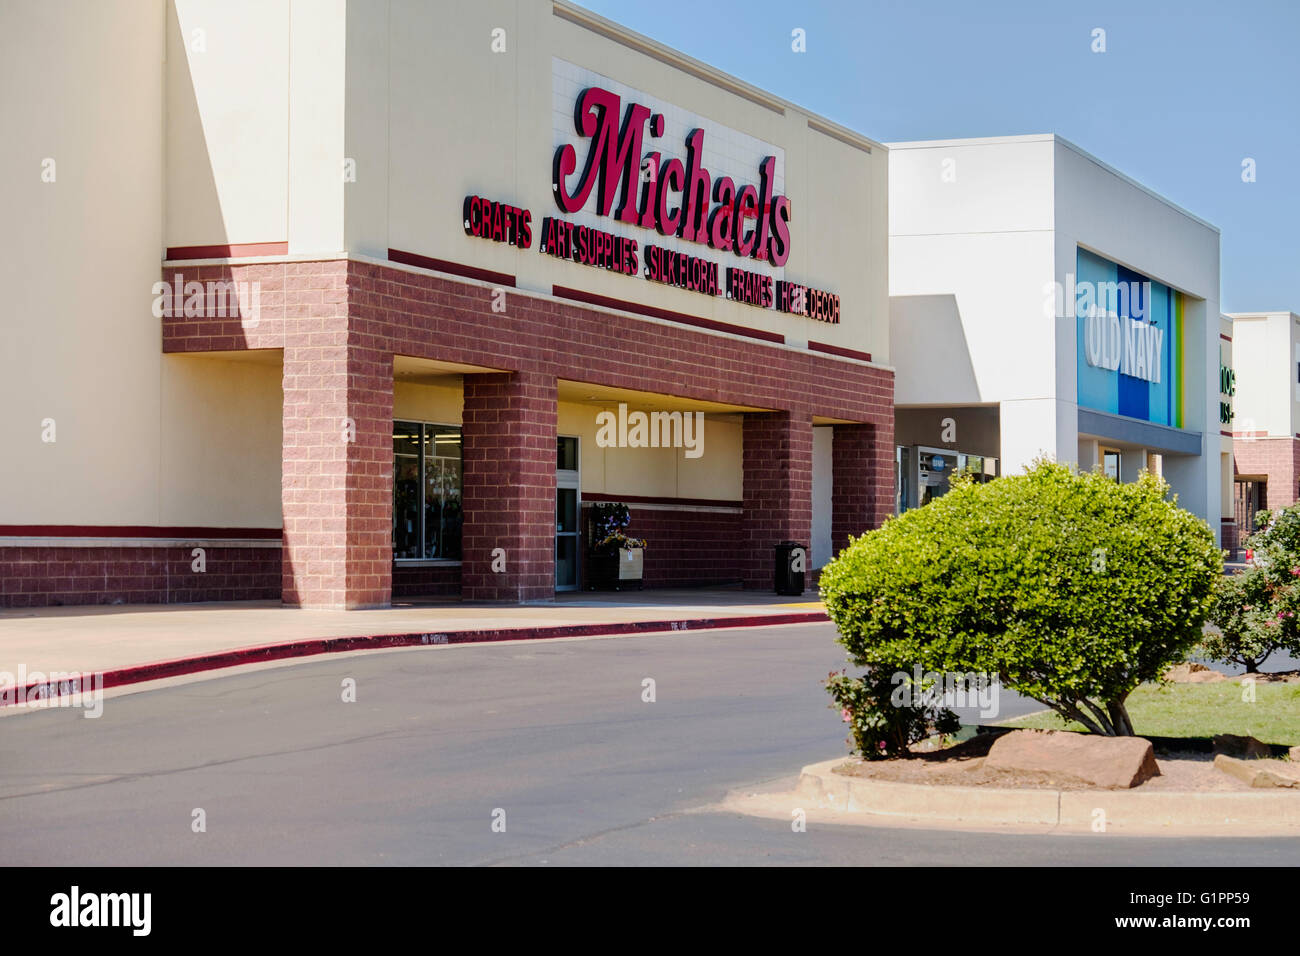 Old navy logo stock photos old navy logo stock images alamy the exterior of michaels arts and crafts and old navy a clothing store on buycottarizona